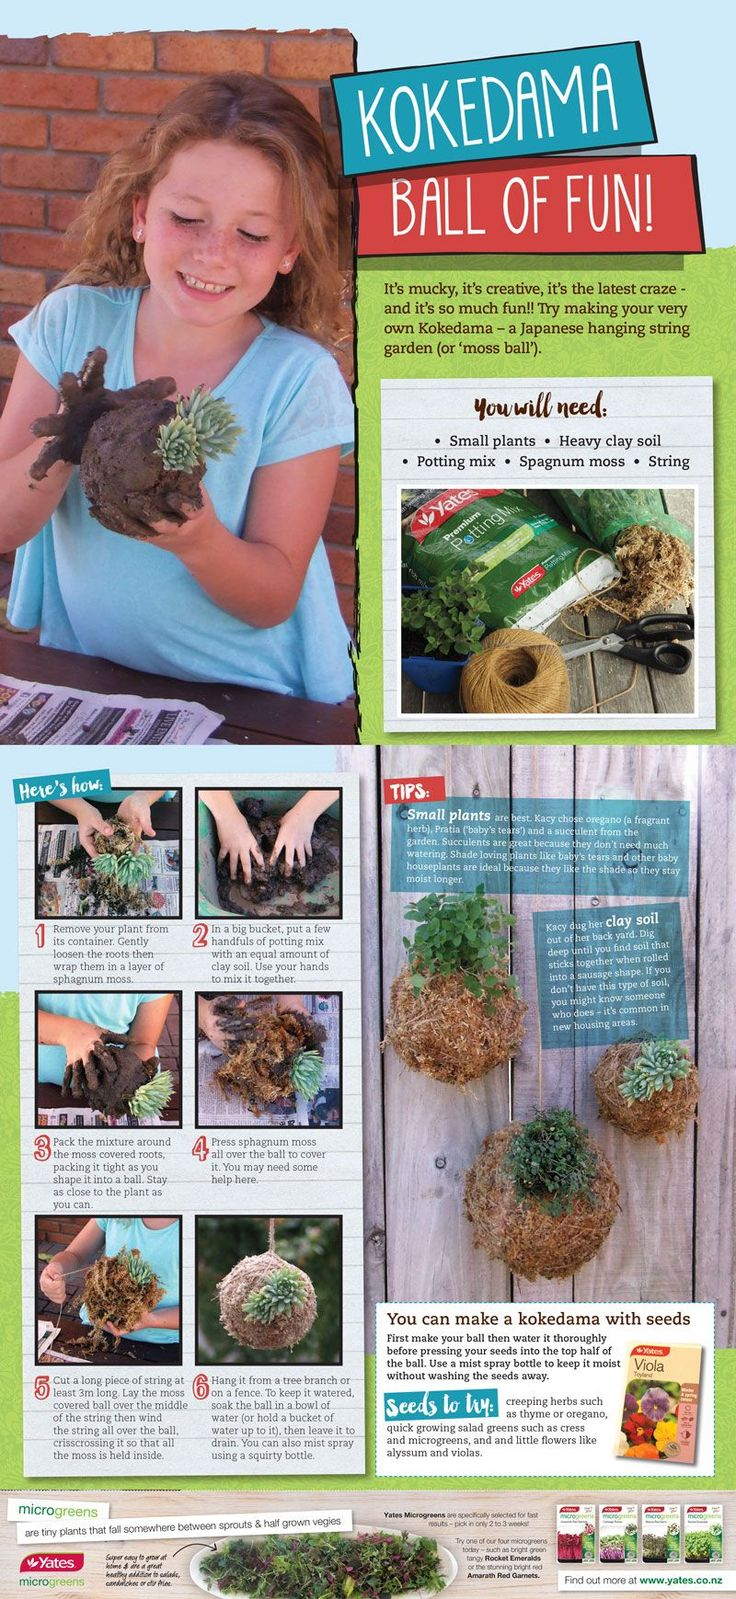 It's mucky, it's creative, it's the latest craze - and it's so much fun!! Try making your very own Kokedama - a Japanese hanging string garden (or 'mossball').<br/>